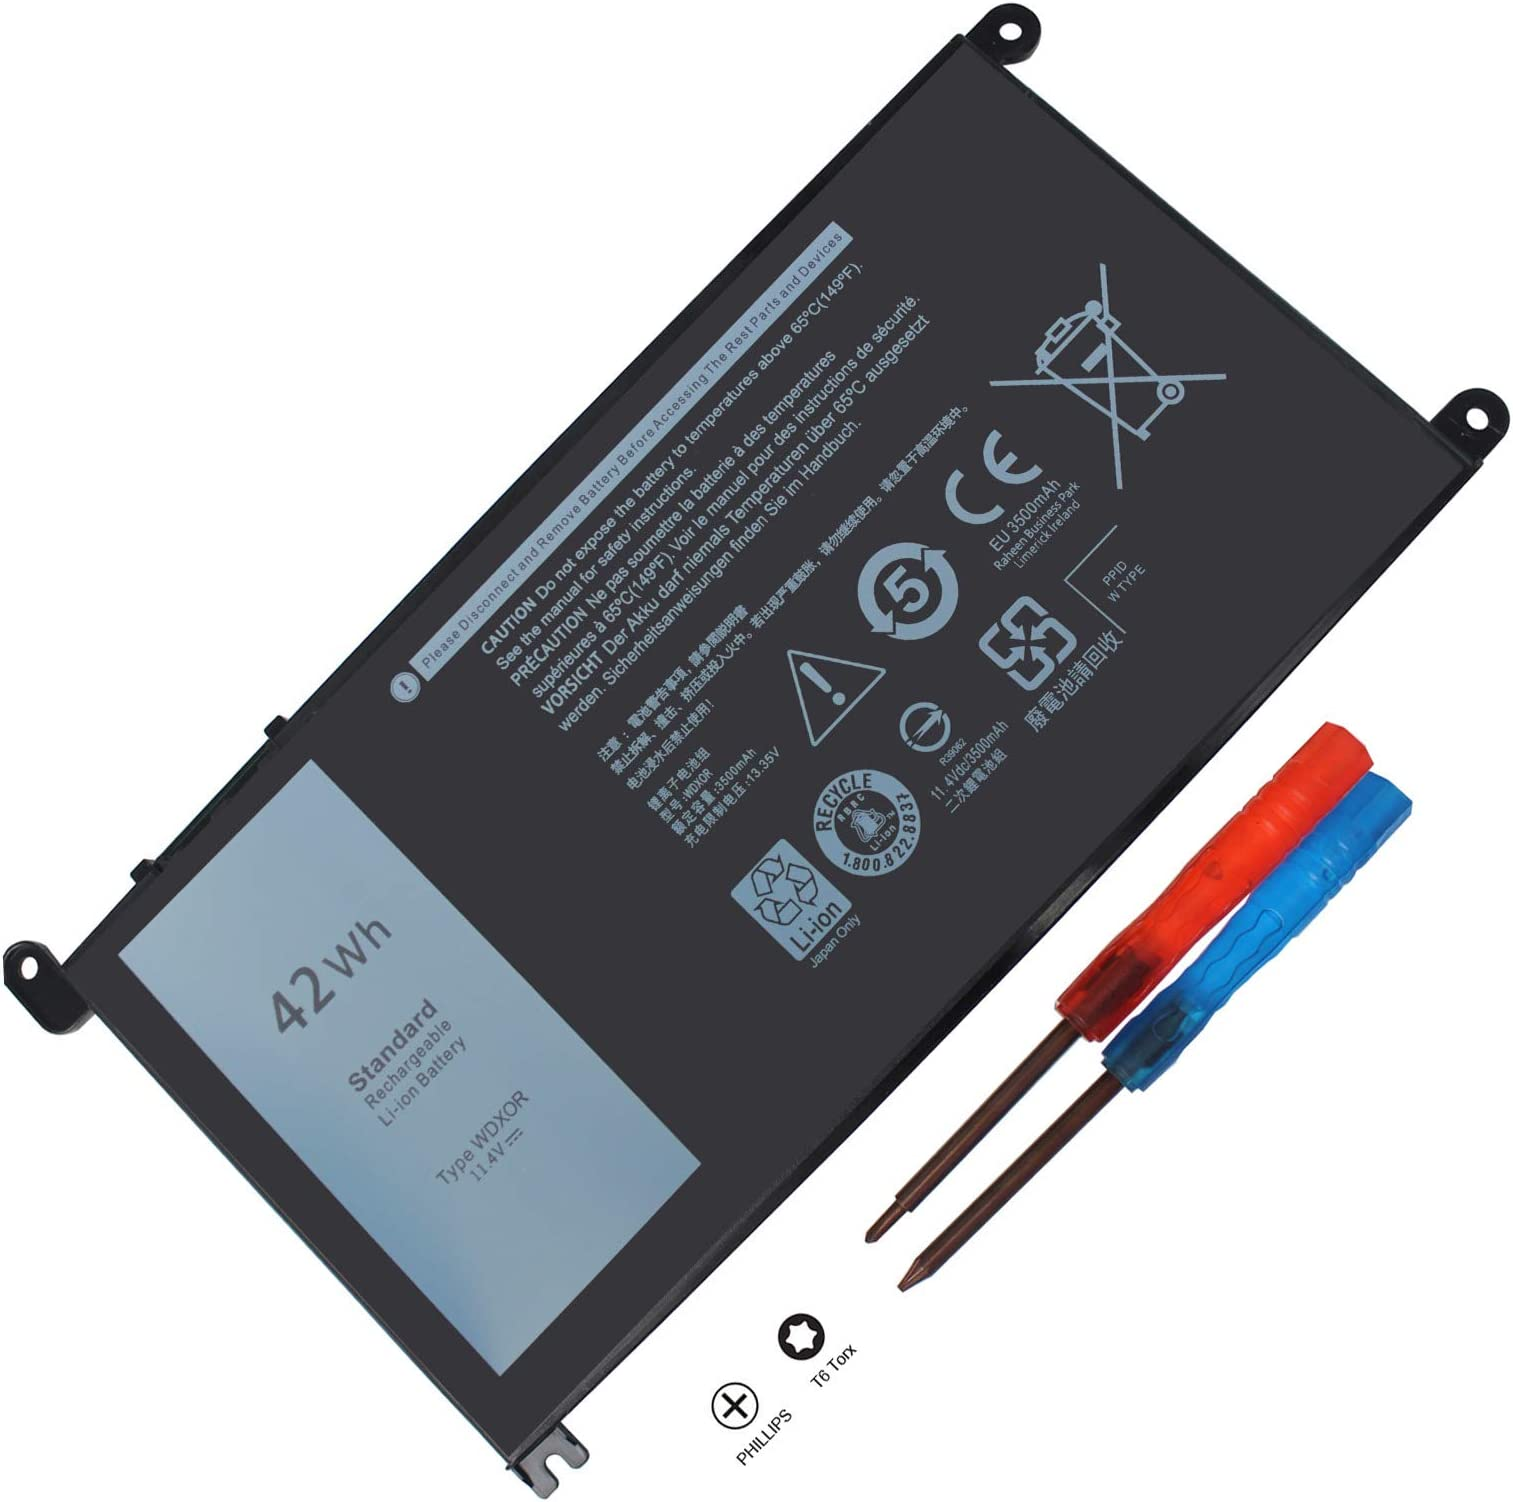 Amazon Com Swealeer Wdx0r Battery Compatible With Dell Inspiron 15 5568 7560 5567 13 5368 5378 7368 7378 14 7460 Laptop Replacement 3crh3 T2jx4 Fc92n 11 4v 42wh 3500mah Wdx0r Electronics